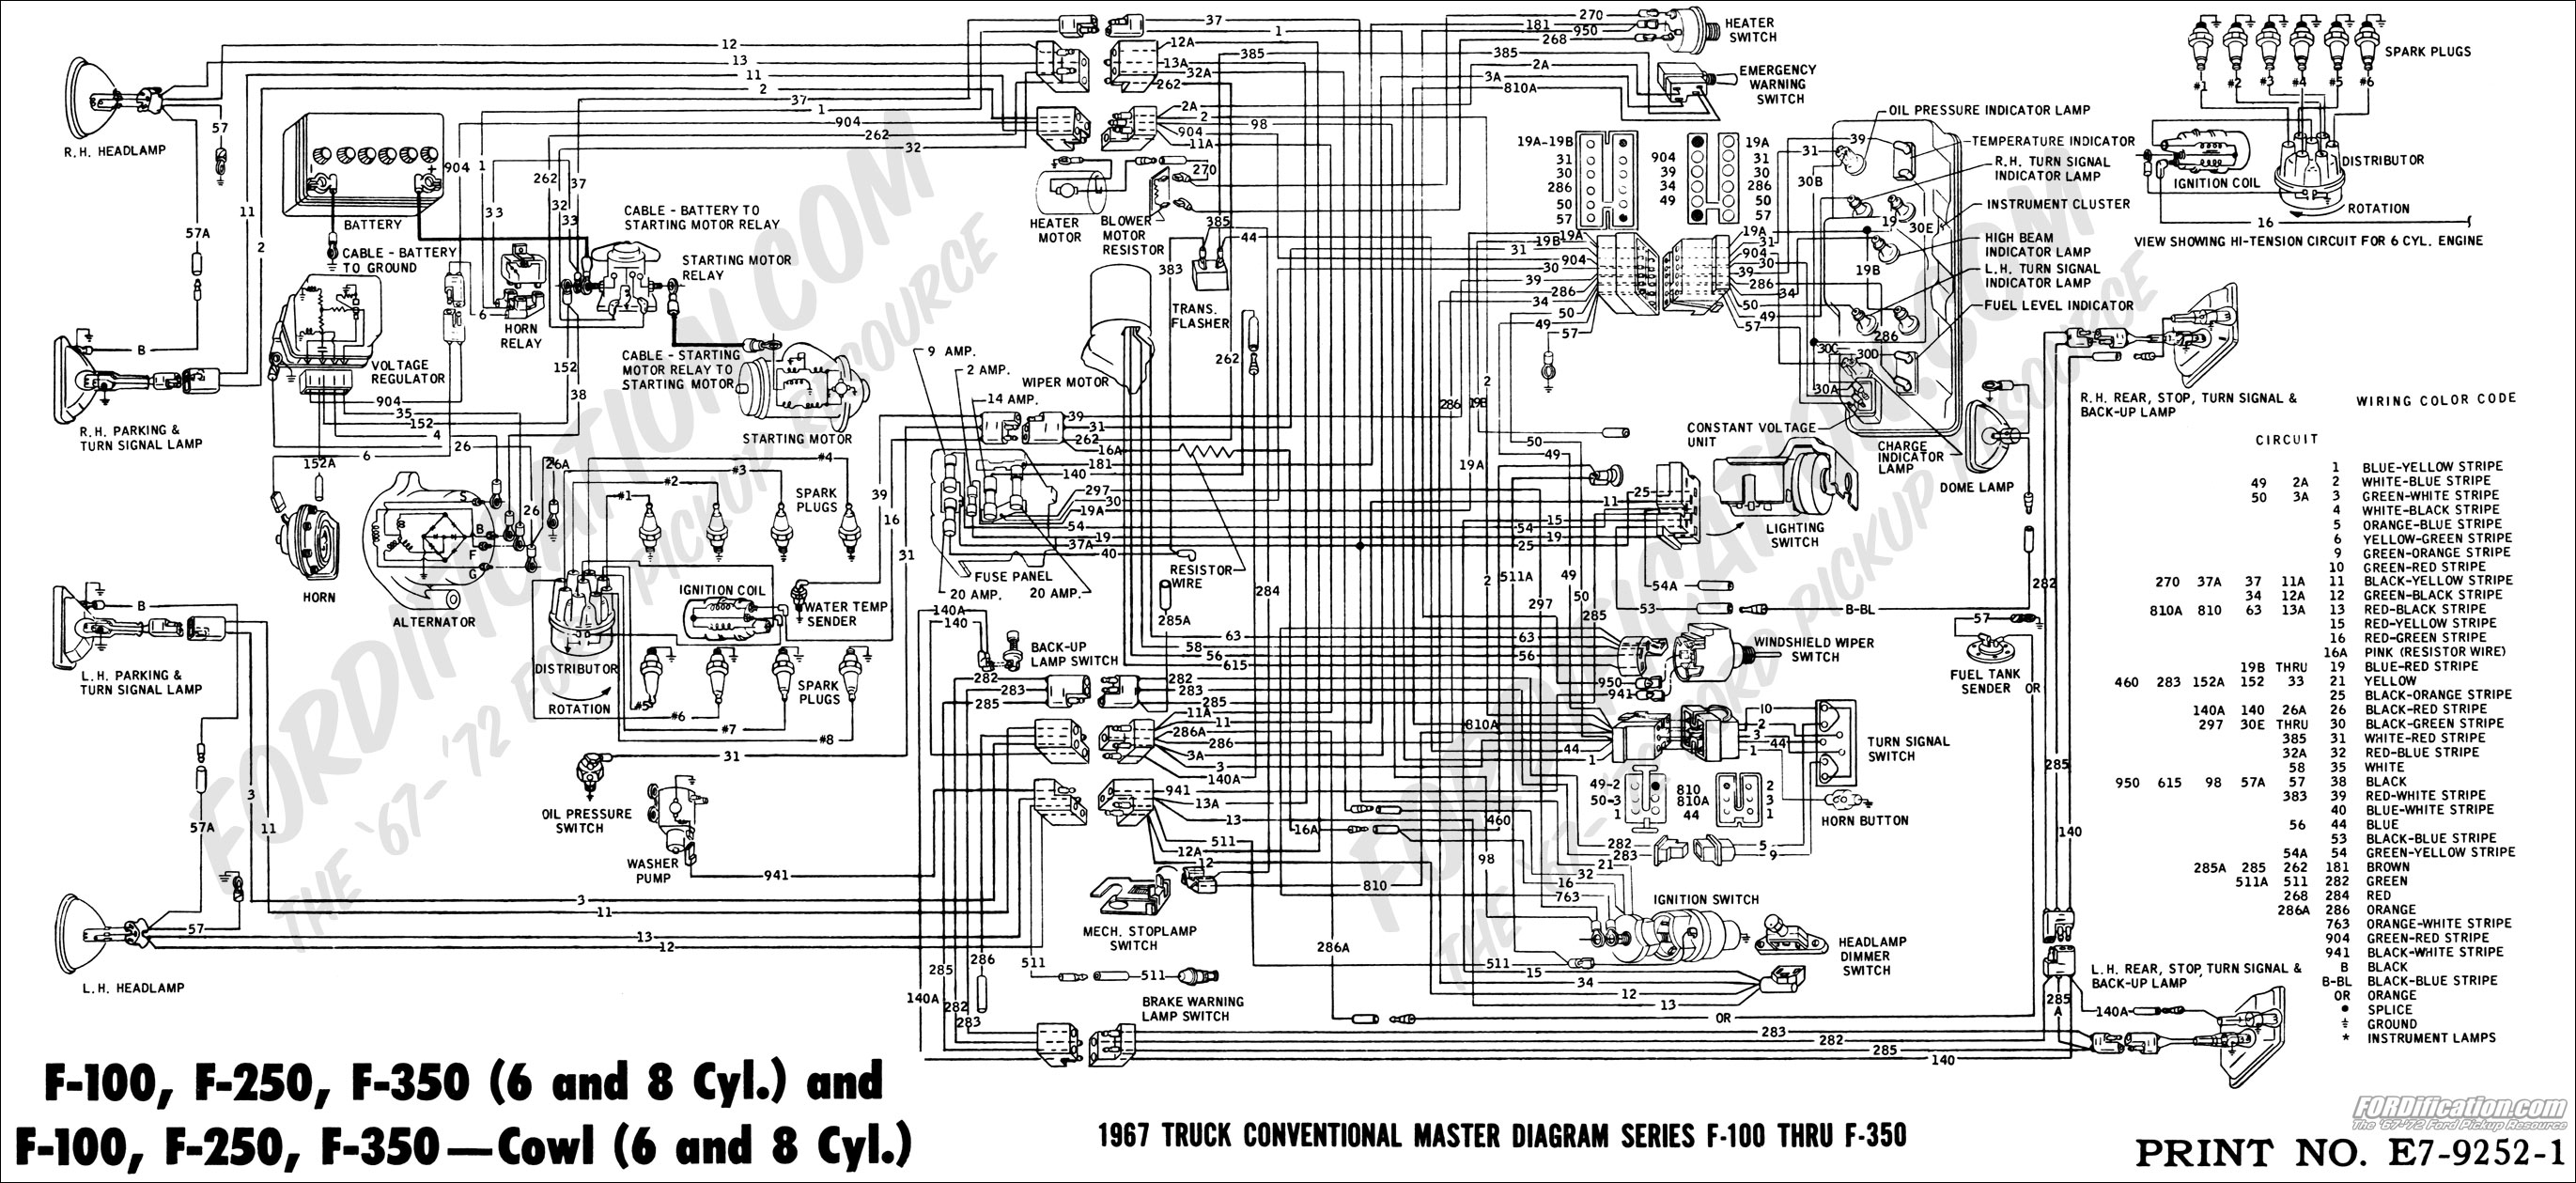 67masterdiagram ford truck technical drawings and schematics section h wiring wiring diagram on a 1977 ford f100 radio at readyjetset.co